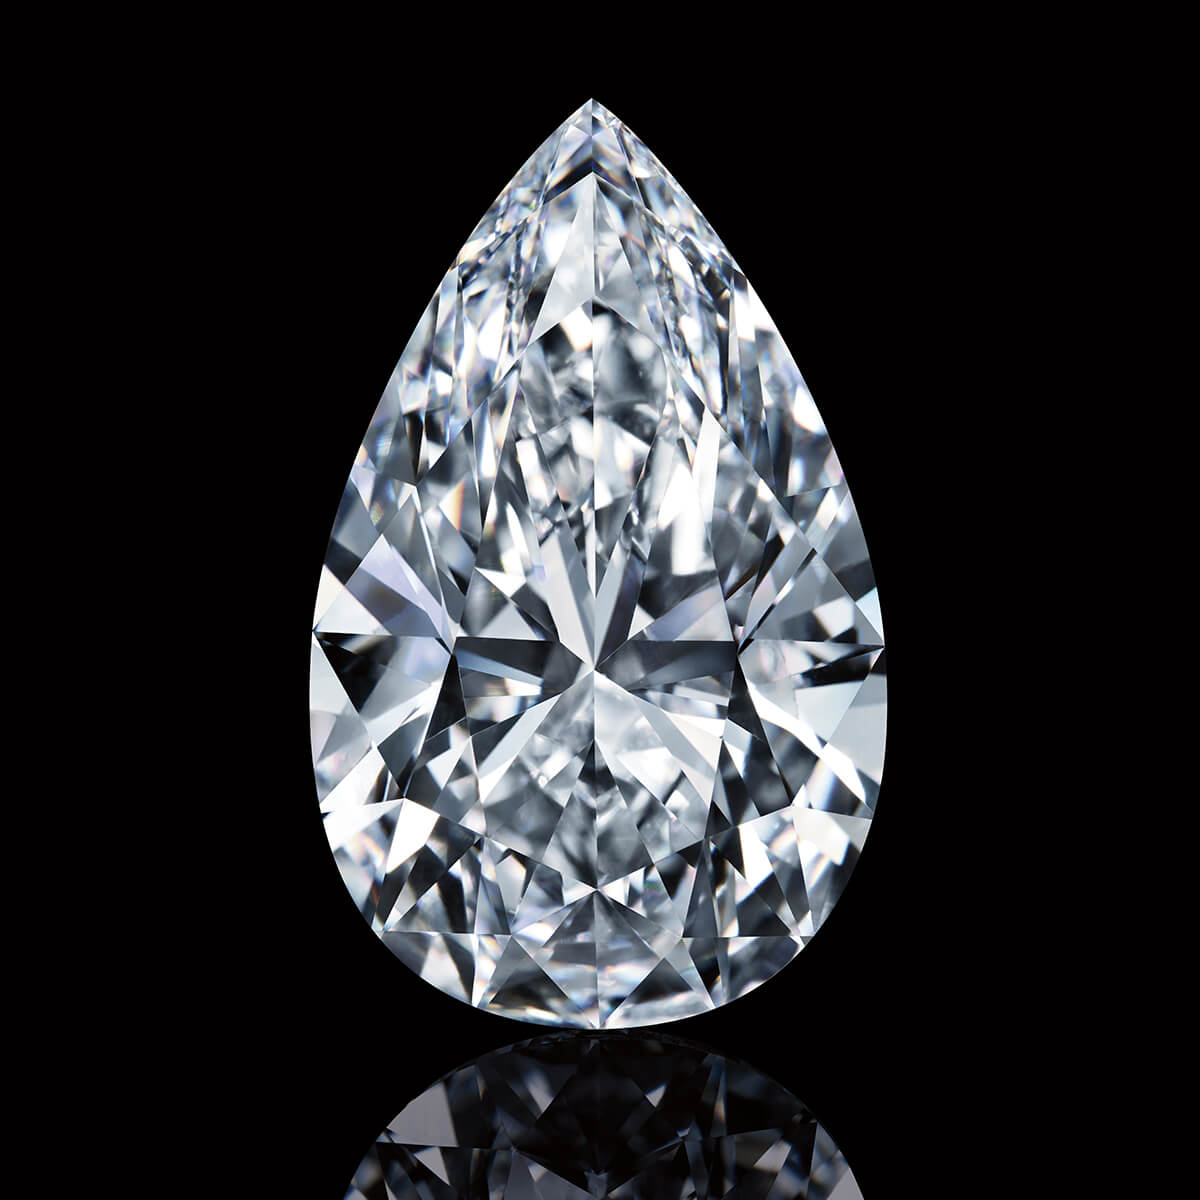 Image of the loose pear-shaped, flawless and colorless Winston Legacy Diamond